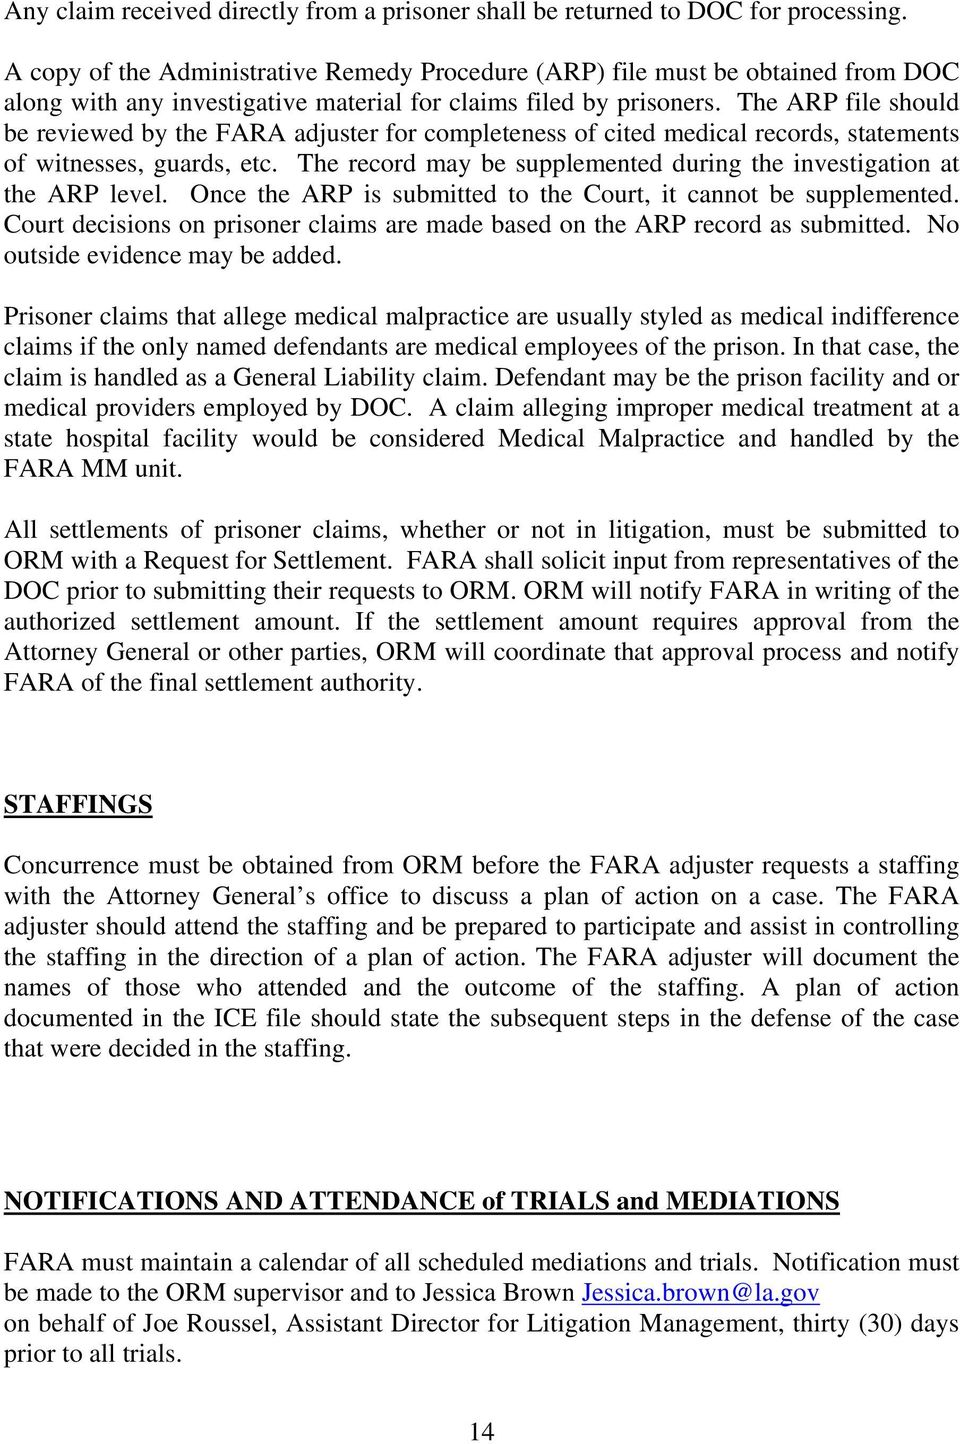 The ARP file should be reviewed by the FARA adjuster for completeness of cited medical records, statements of witnesses, guards, etc.